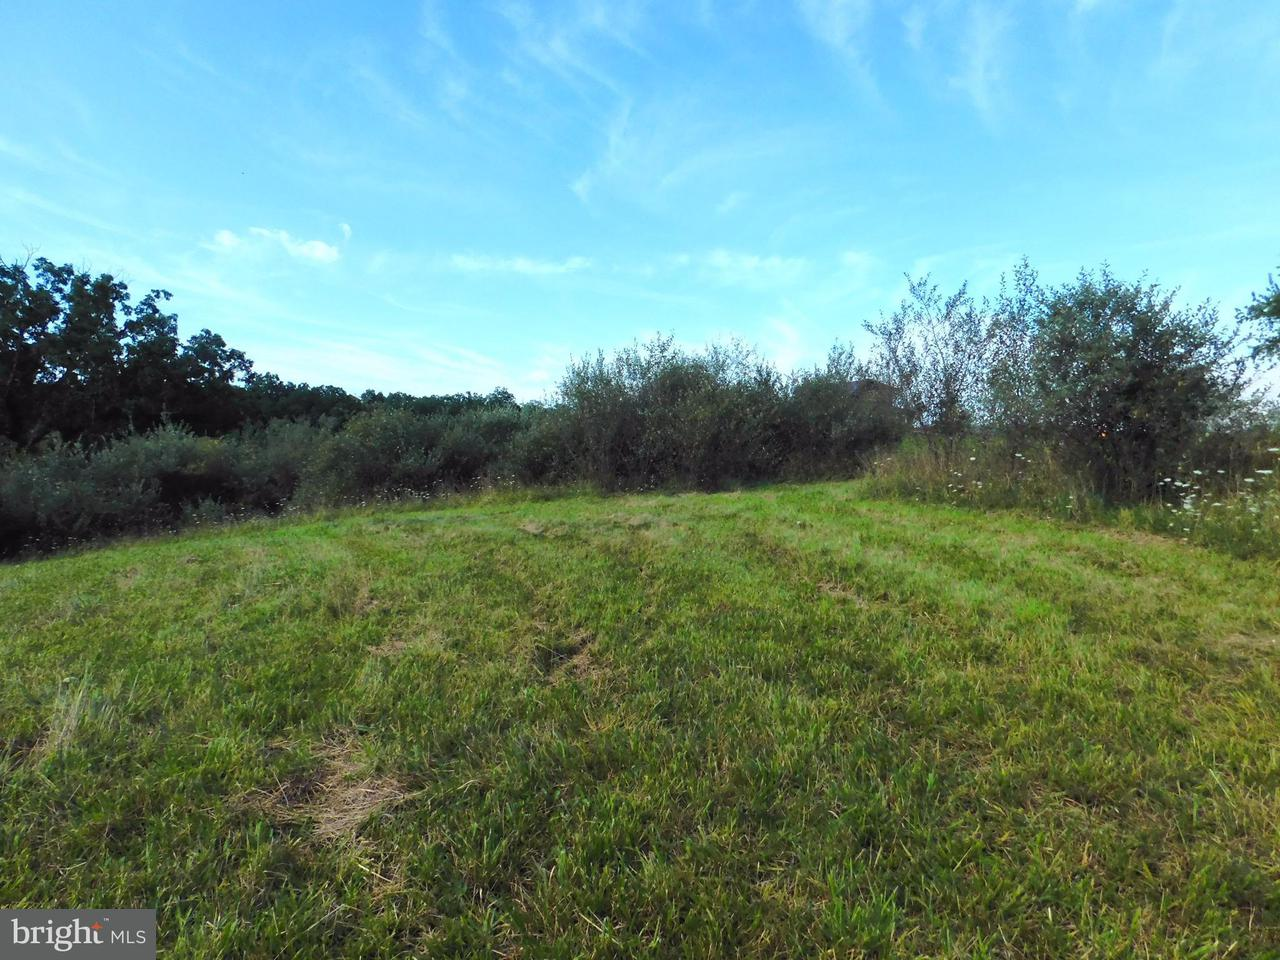 Land for Sale at Sea Biscuit Dr Levels, West Virginia 25431 United States